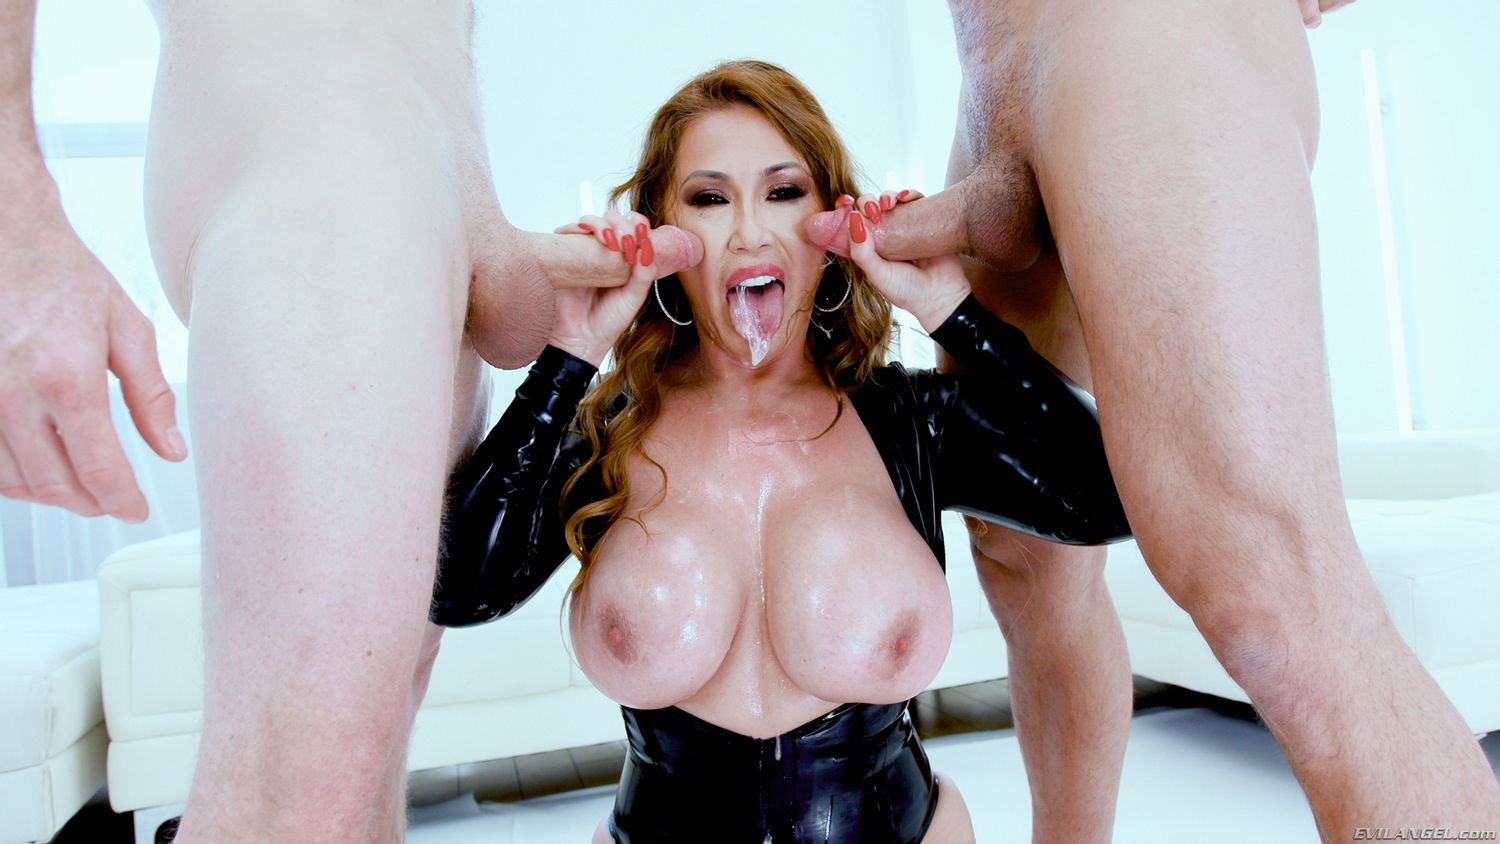 Redhead asian mif pornstar Japanese Kianna Dior with huge boobs in latex bodysuit gets facial cu ...